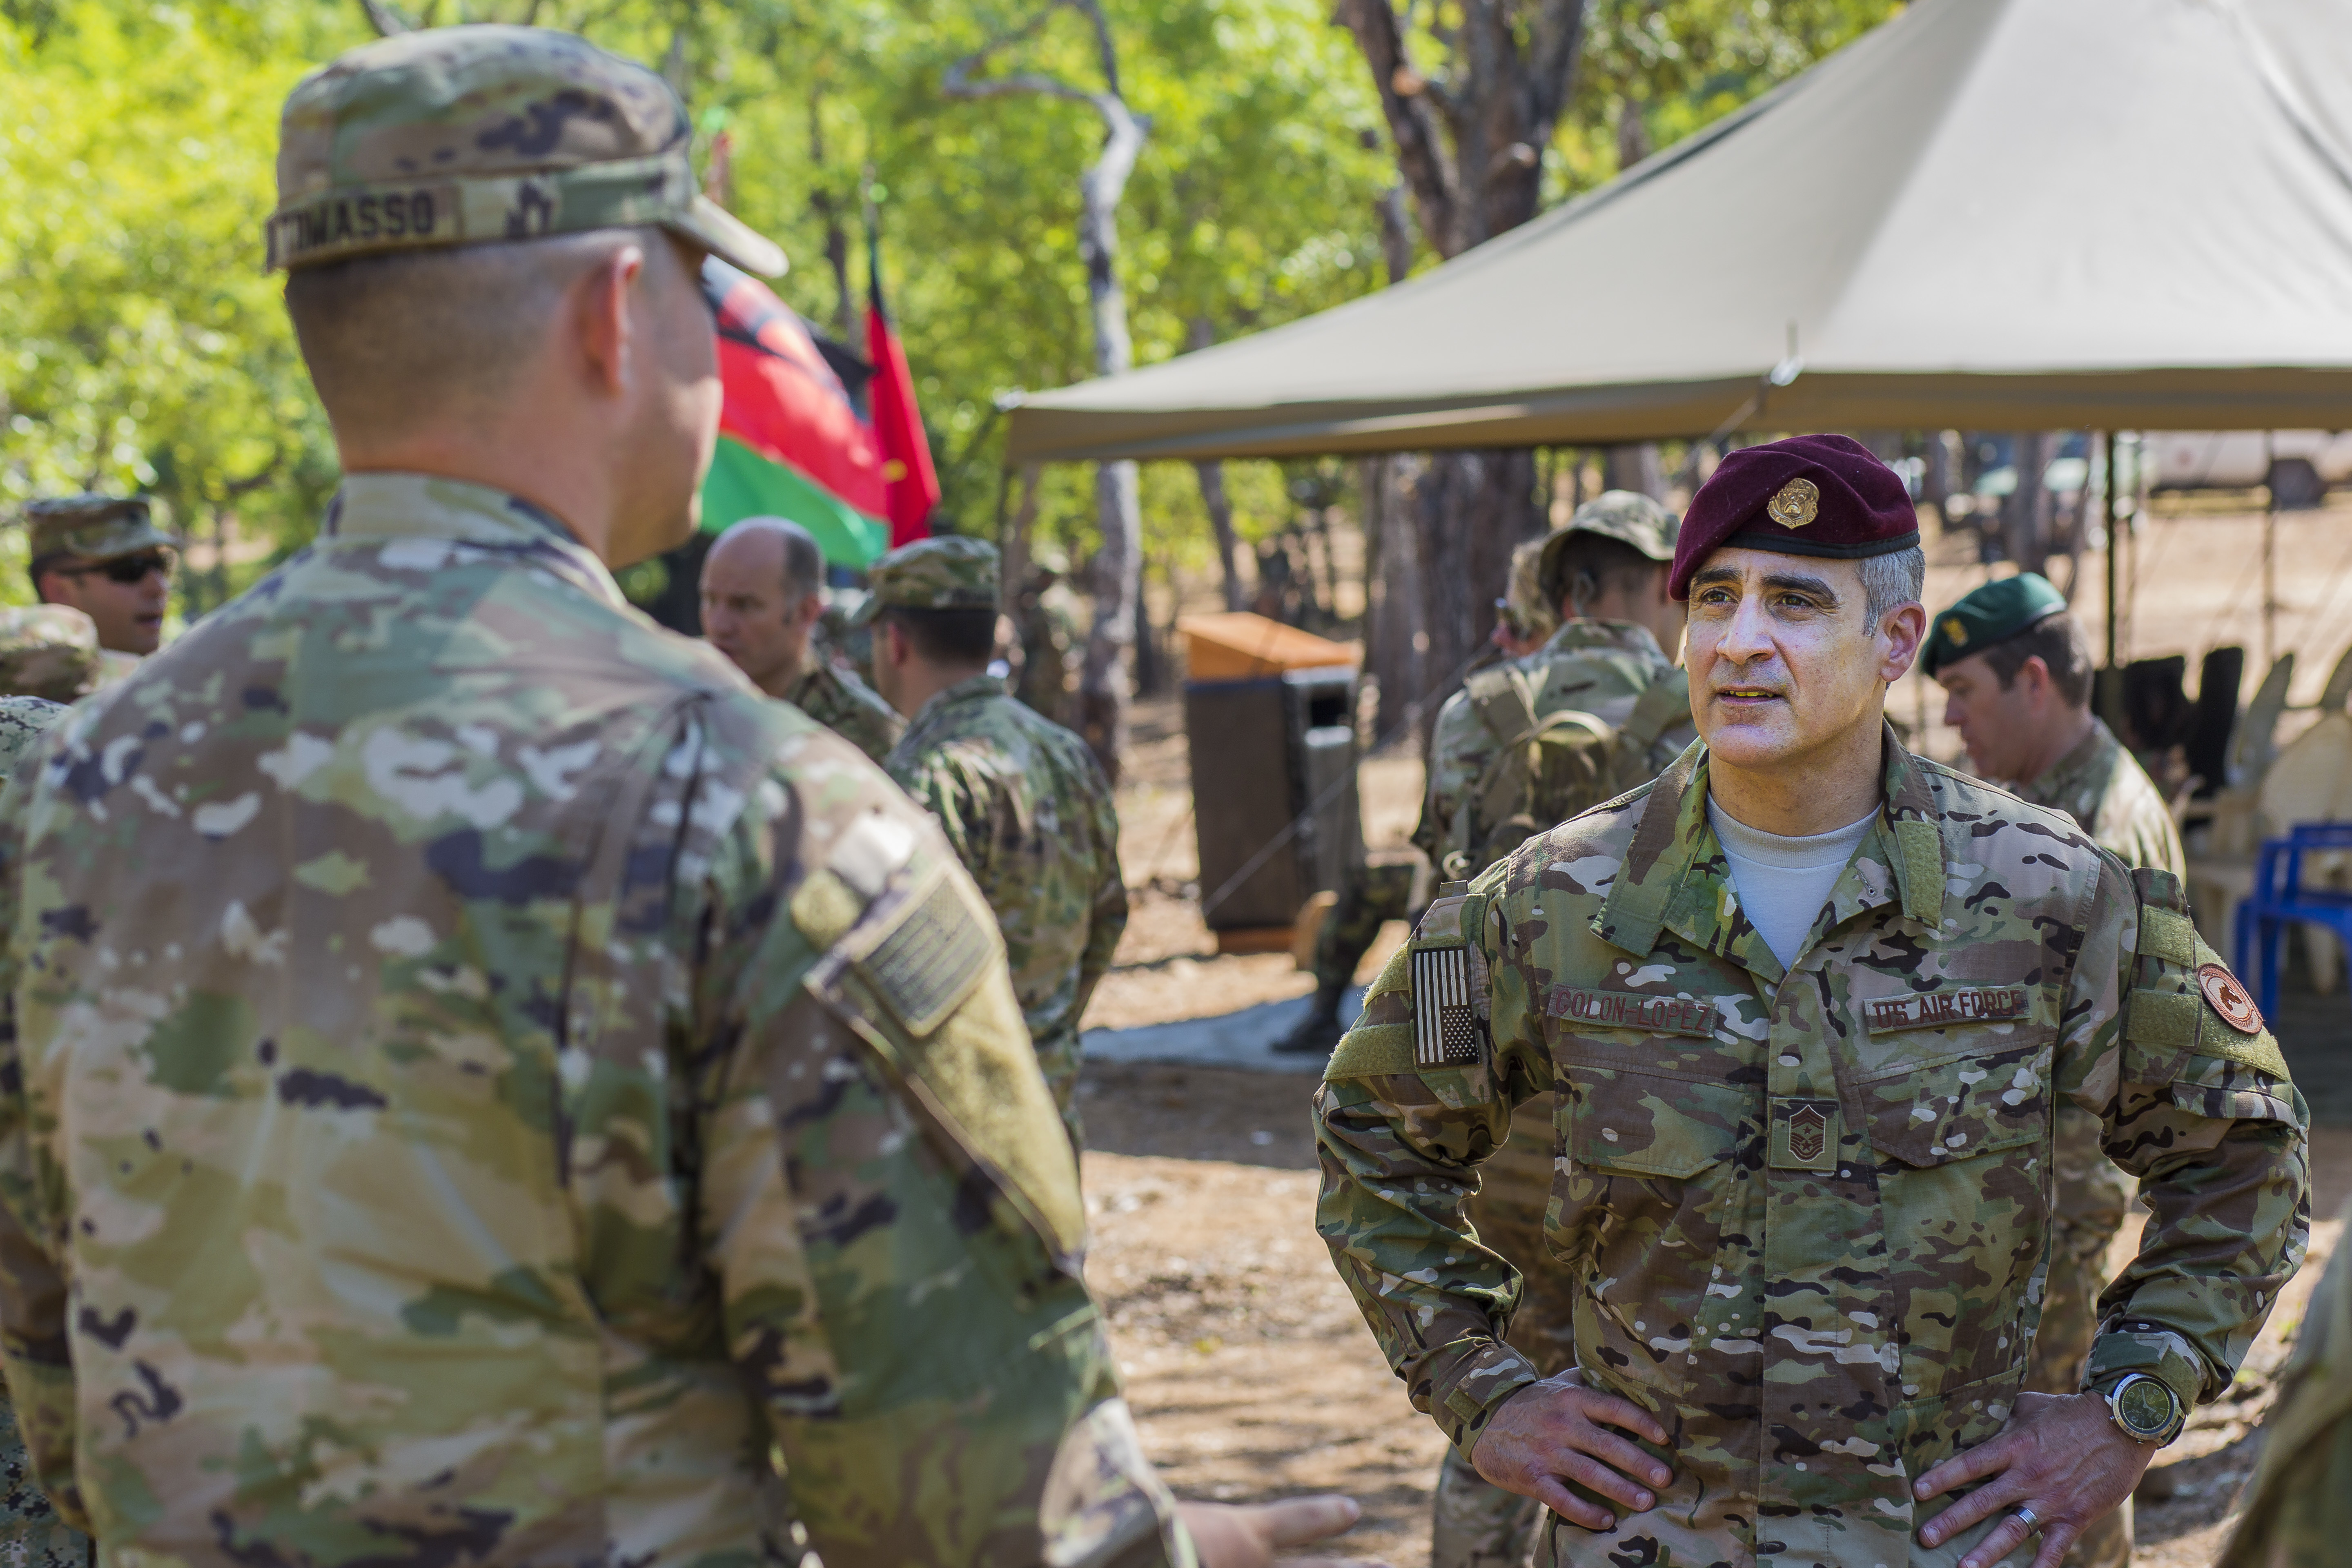 U.S. Africa Command Senior Enlisted Leader Command Chief Master Sgt. Ramon Colon-Lopez meets with U.S. Army soldiers who helped train the Malawi Defence Force during the Malawi Battalion Training Course in Malawi, Africa, May 31, 2018. Colon-Lopez travelled to Malawi to meet with the Malawi Defence Force, engaging with both senior officer and enlisted leadership as part of a three-day tour. The visit included a follow-up on issues addressed by the MDF during the Africa Senior Enlisted Leader Conference in November 2017, as well as assess the MDF's capability to train and sustain Peace Keeping Operations Forces.